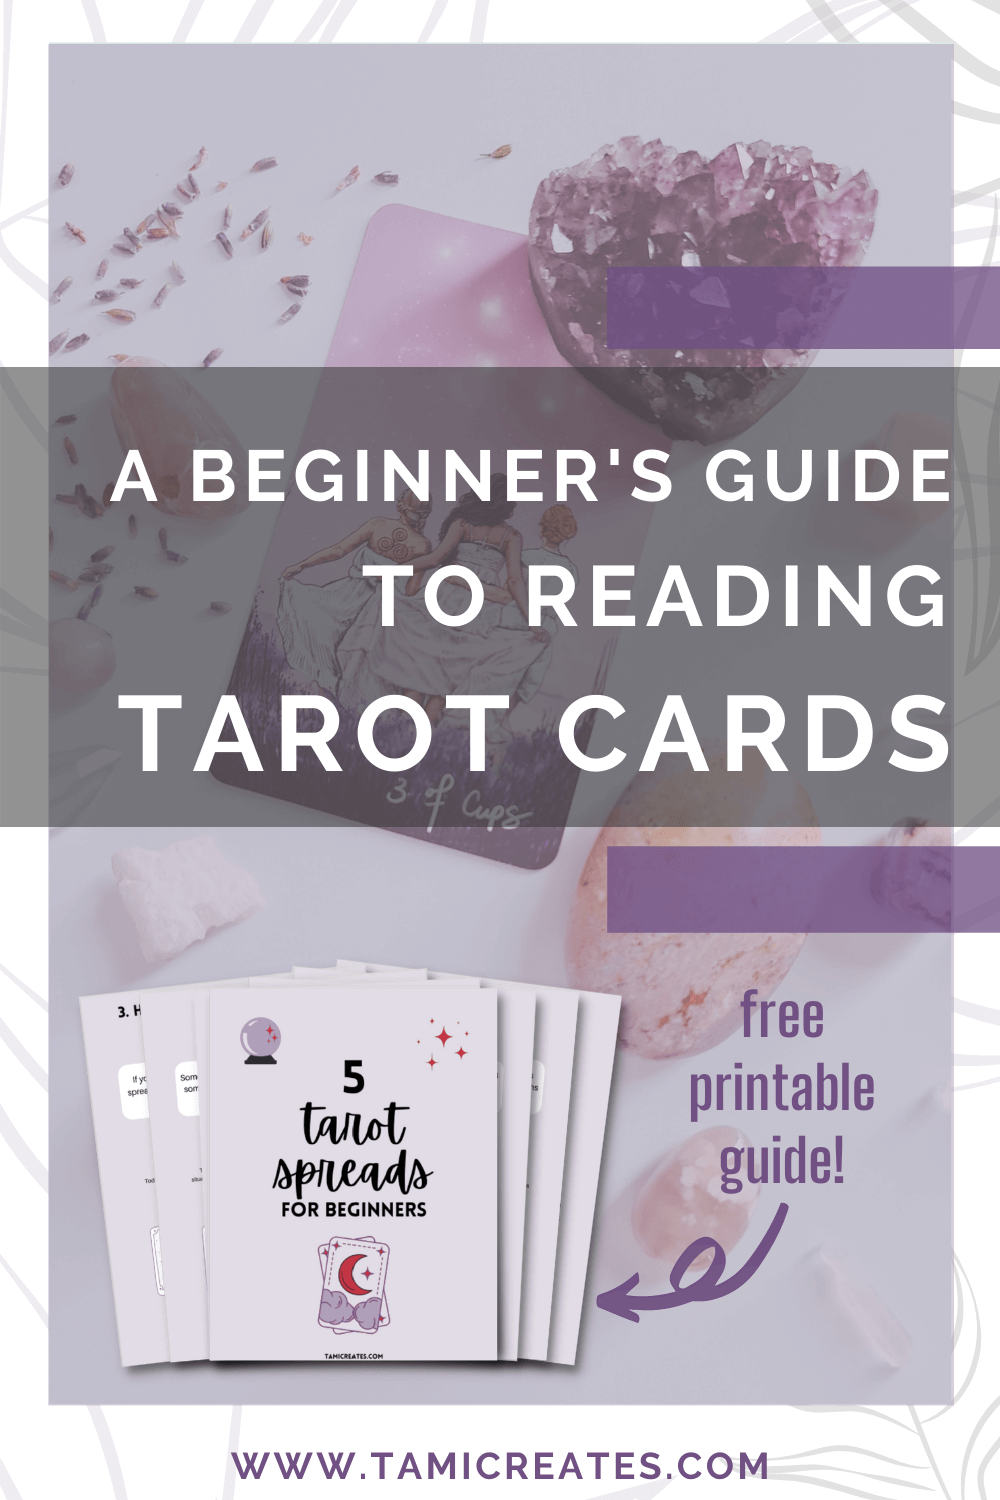 It can be confusing to know where to start with tarot cards. Here's a beginner's guide to tarot cards, plus a free printable guide to tarot spreads for beginners! #tarotcards #tarotspreads #tarotguide #freeprintable #magic #witchy #wicca